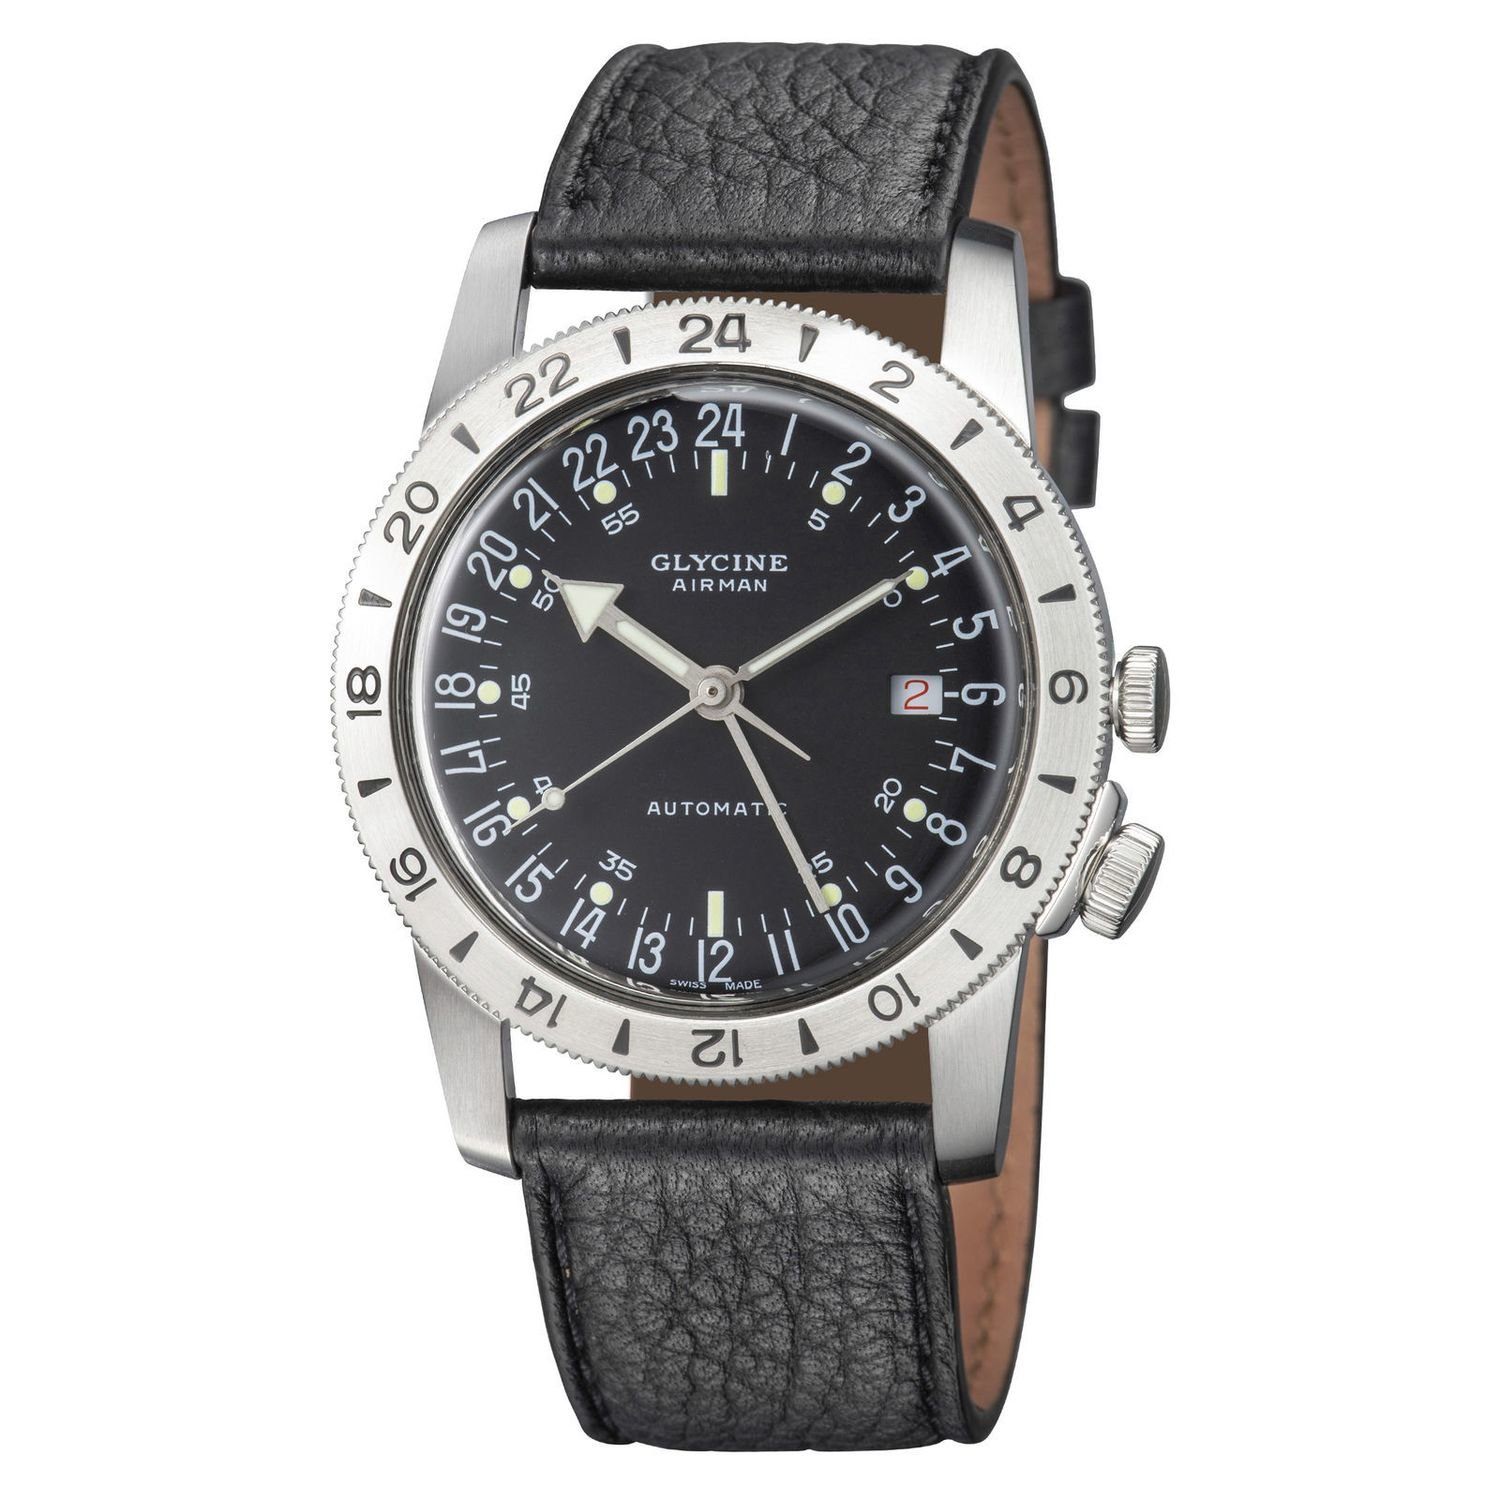 Glycine Airman Limited Edition 40mm Automatic